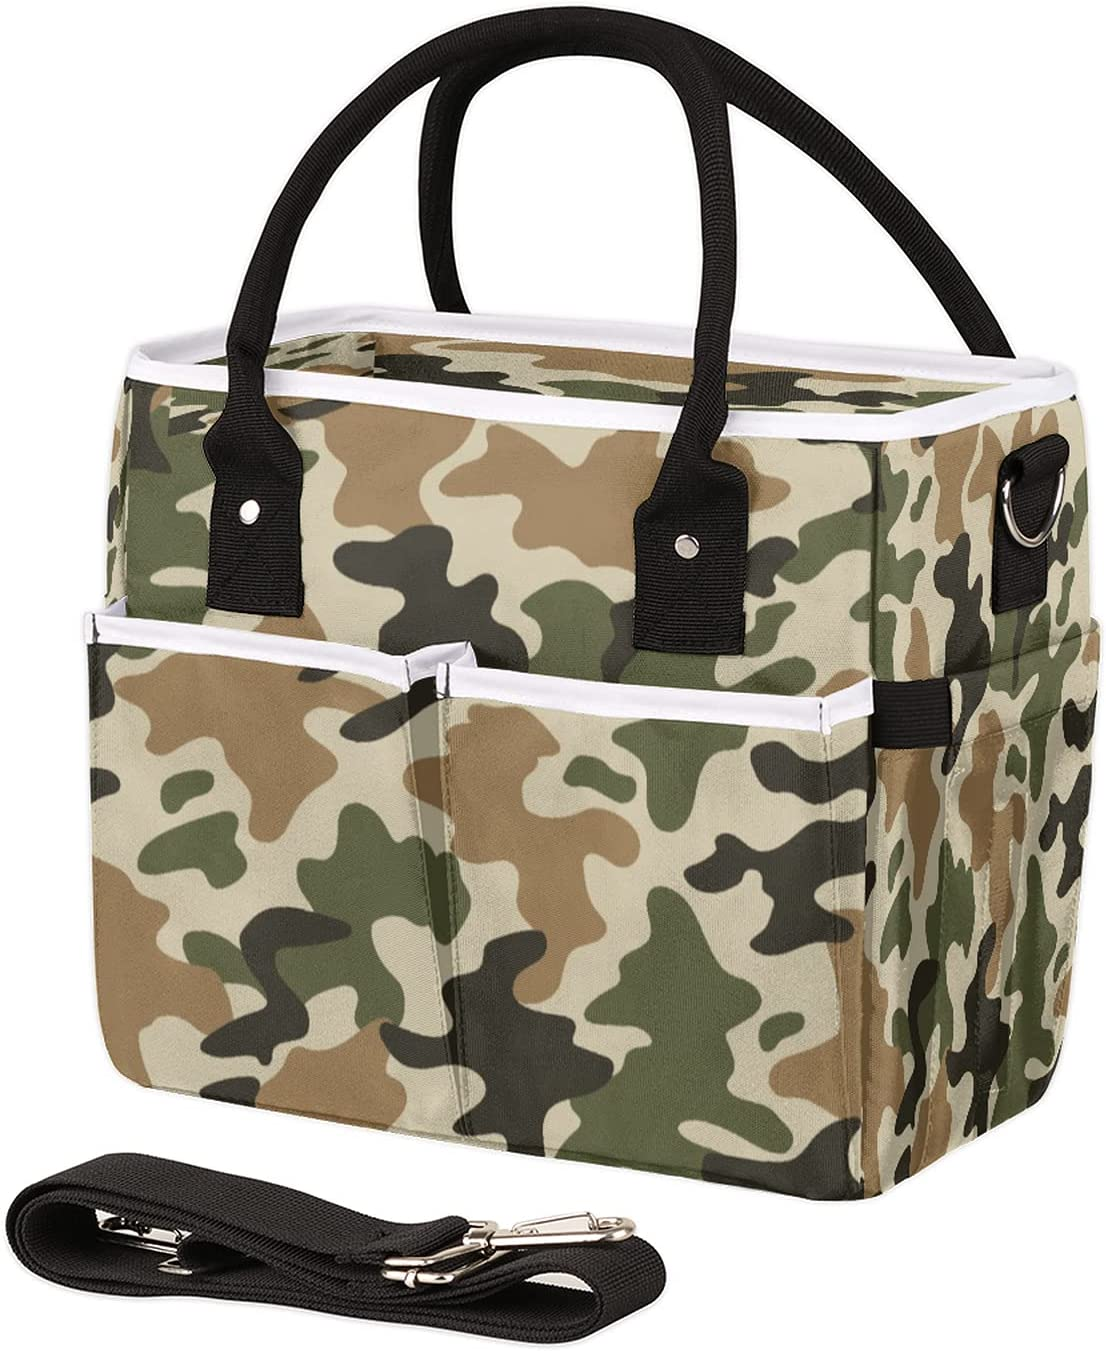 Insulated Lunch At the price Bag for Women half Camo Men Pattern Leakproof Reusabl